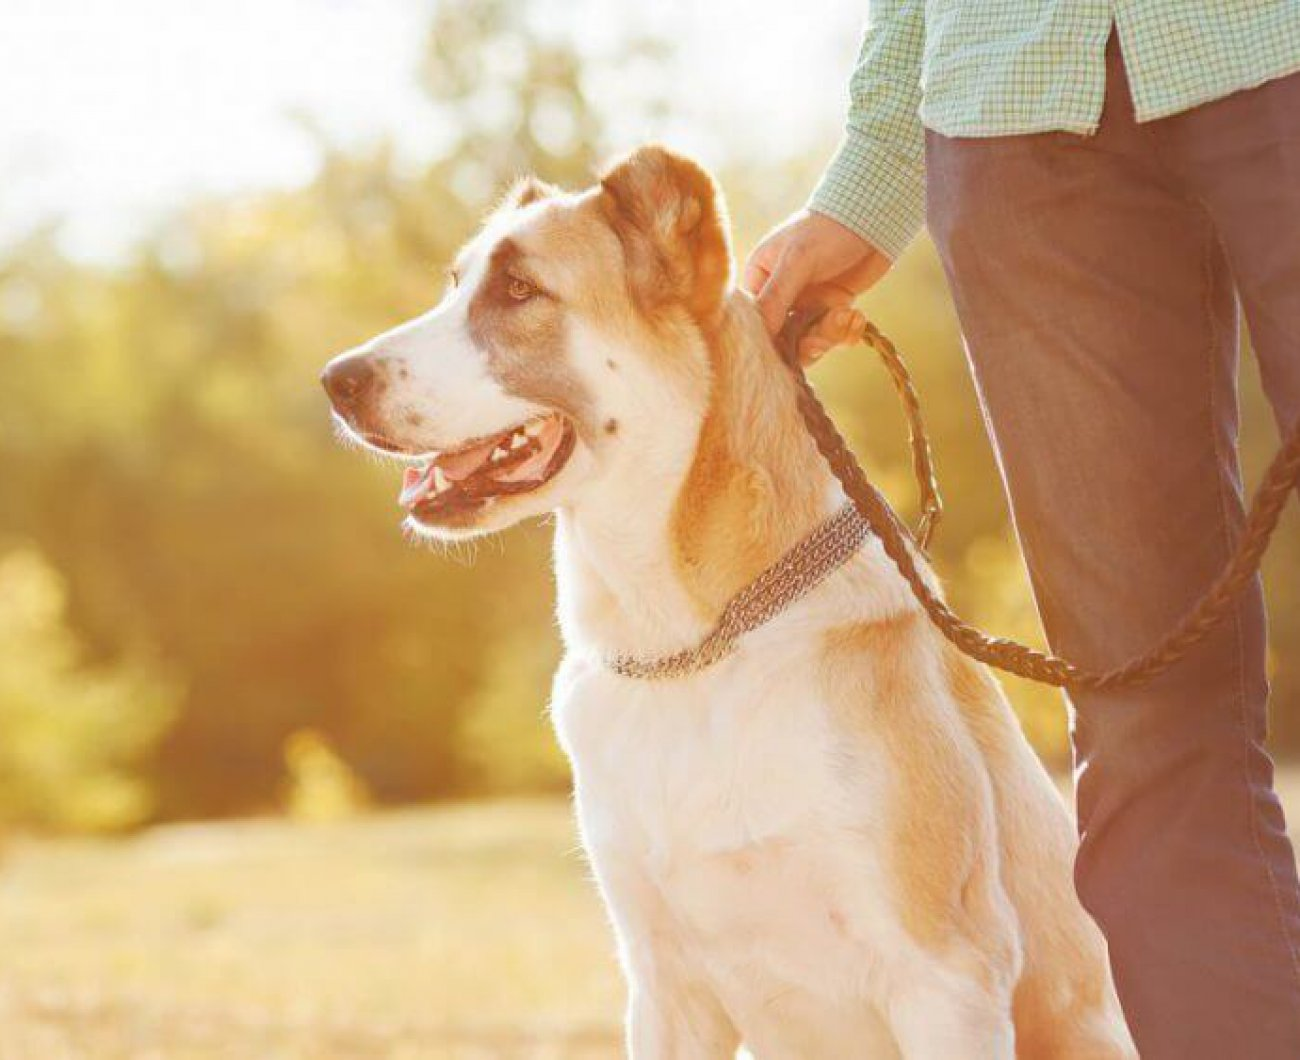 Dog on lead with owner